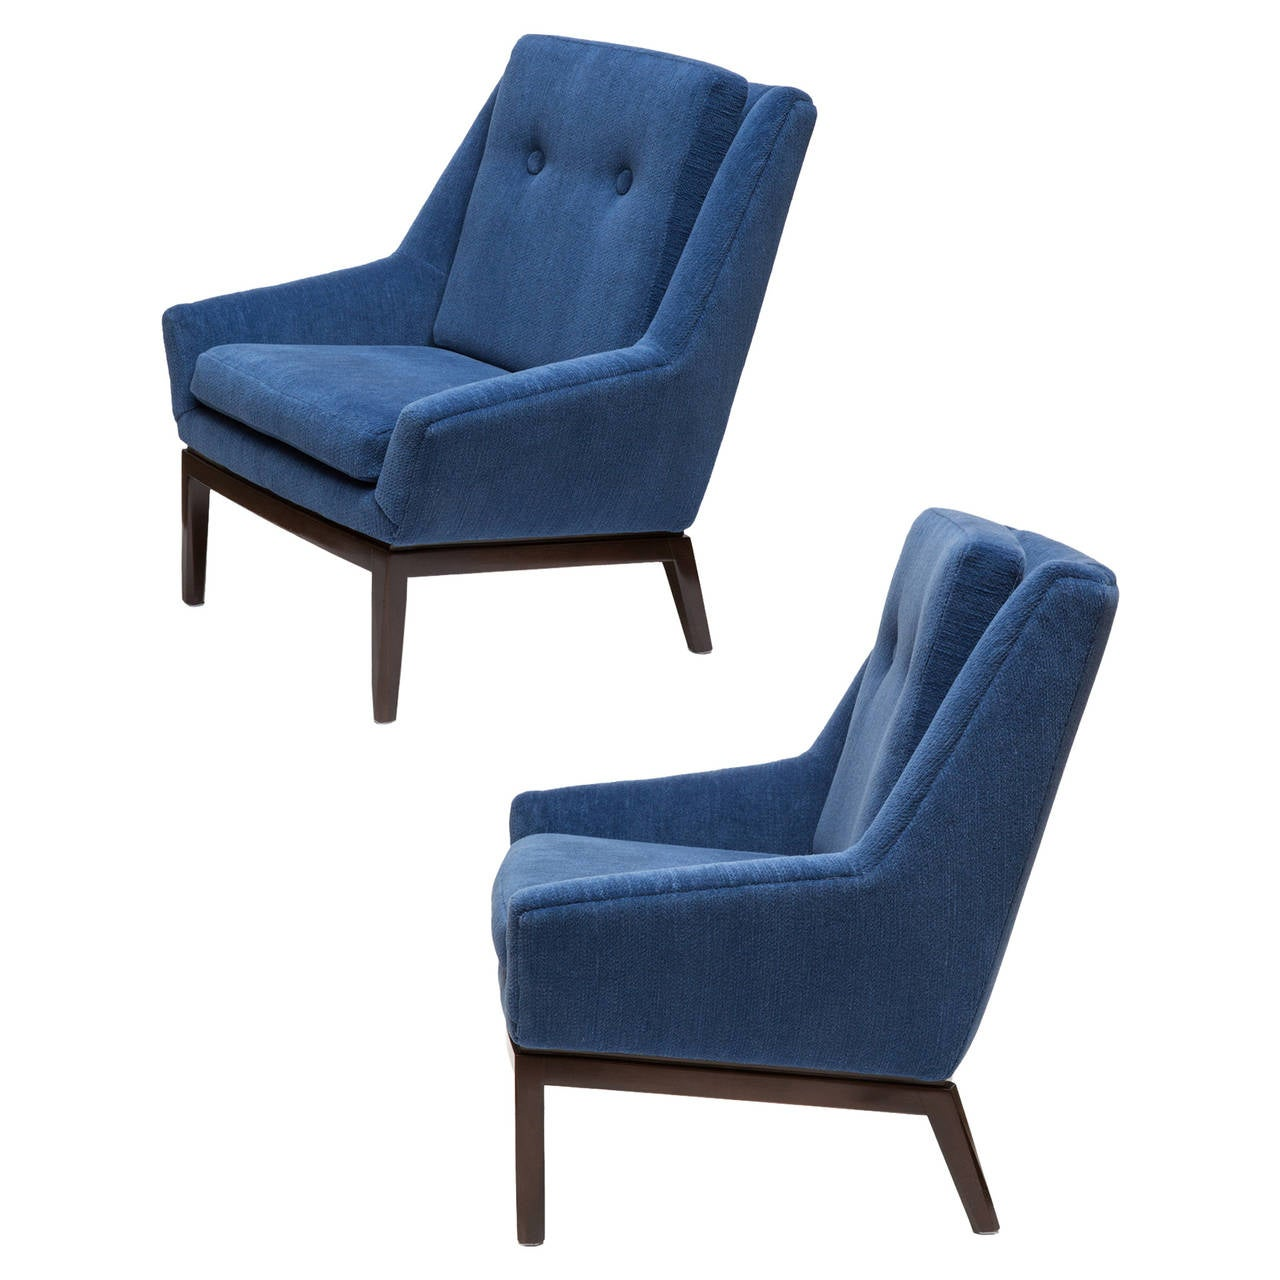 Furniture Markham Mid Century Modern Markham Chair For Sale At 1stdibs